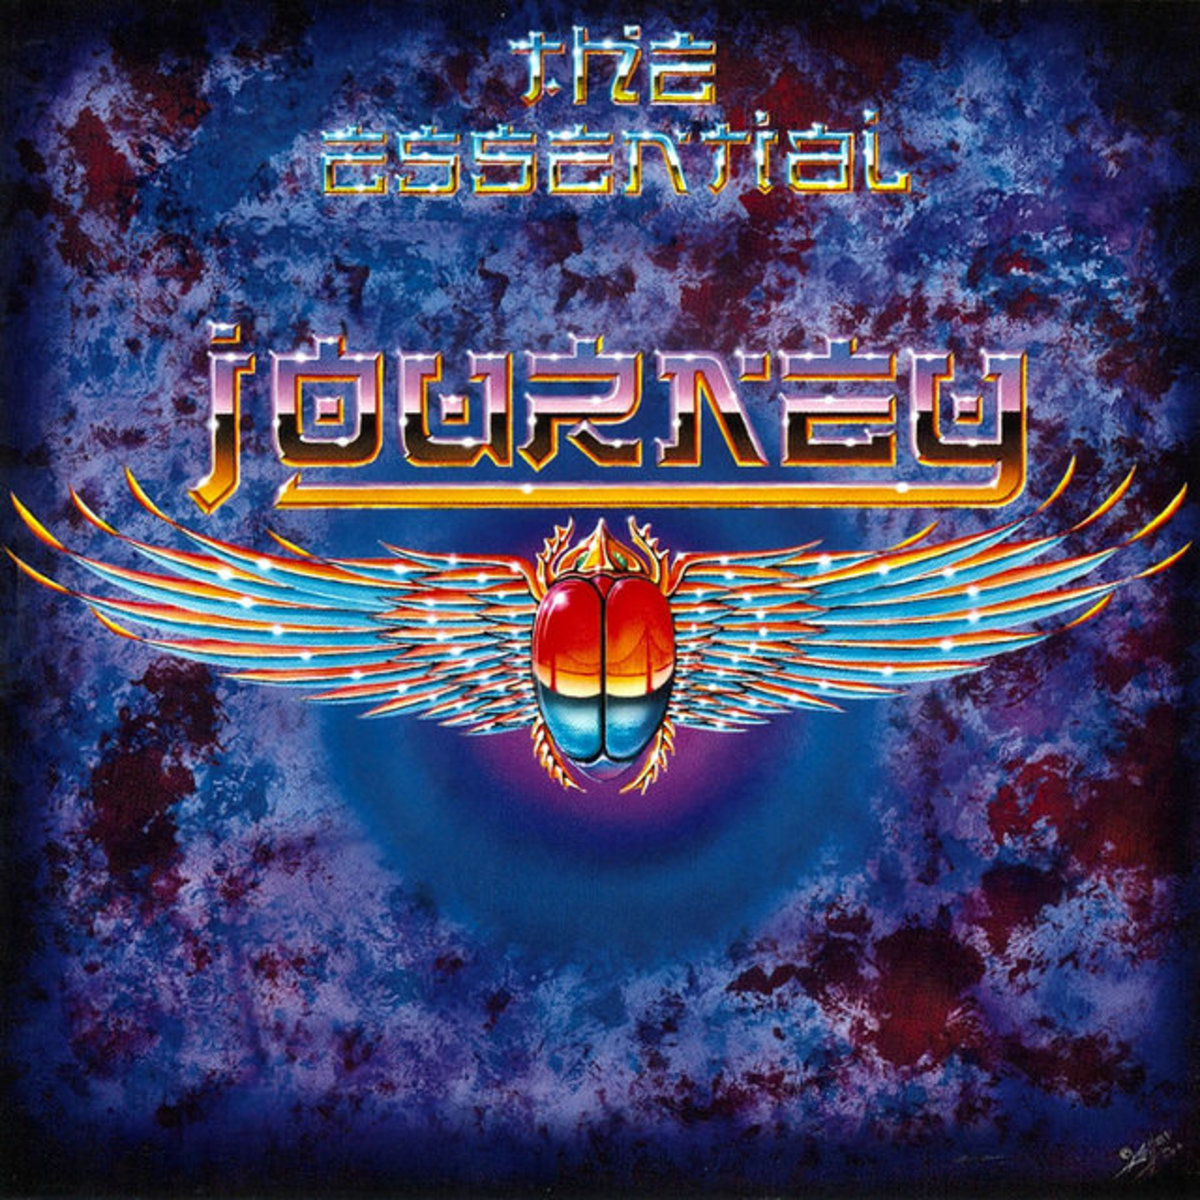 "Journey ""The Essentials"" Columbia, Legacy	Columbia, C2K 86080 2 CD Set US Pressing (2001) Album Cover Art by Alton Kelley"